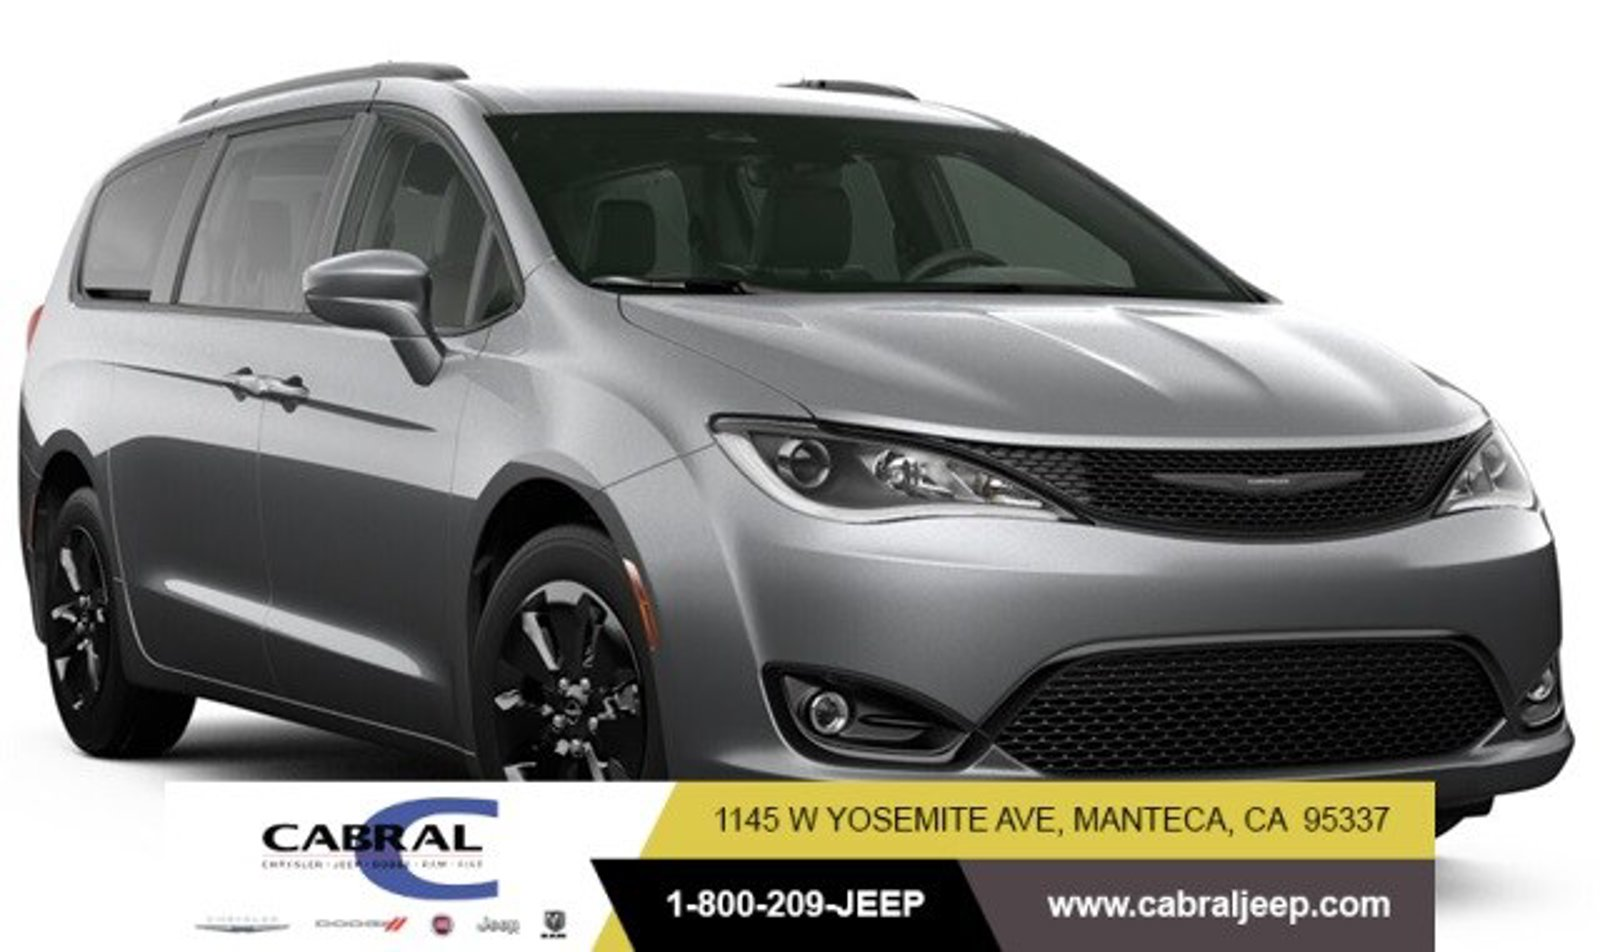 2020 Chrysler Pacifica Hybrid Touring L Hybrid Touring L FWD Gas/Electric V-6 3.6 L/220 [1]